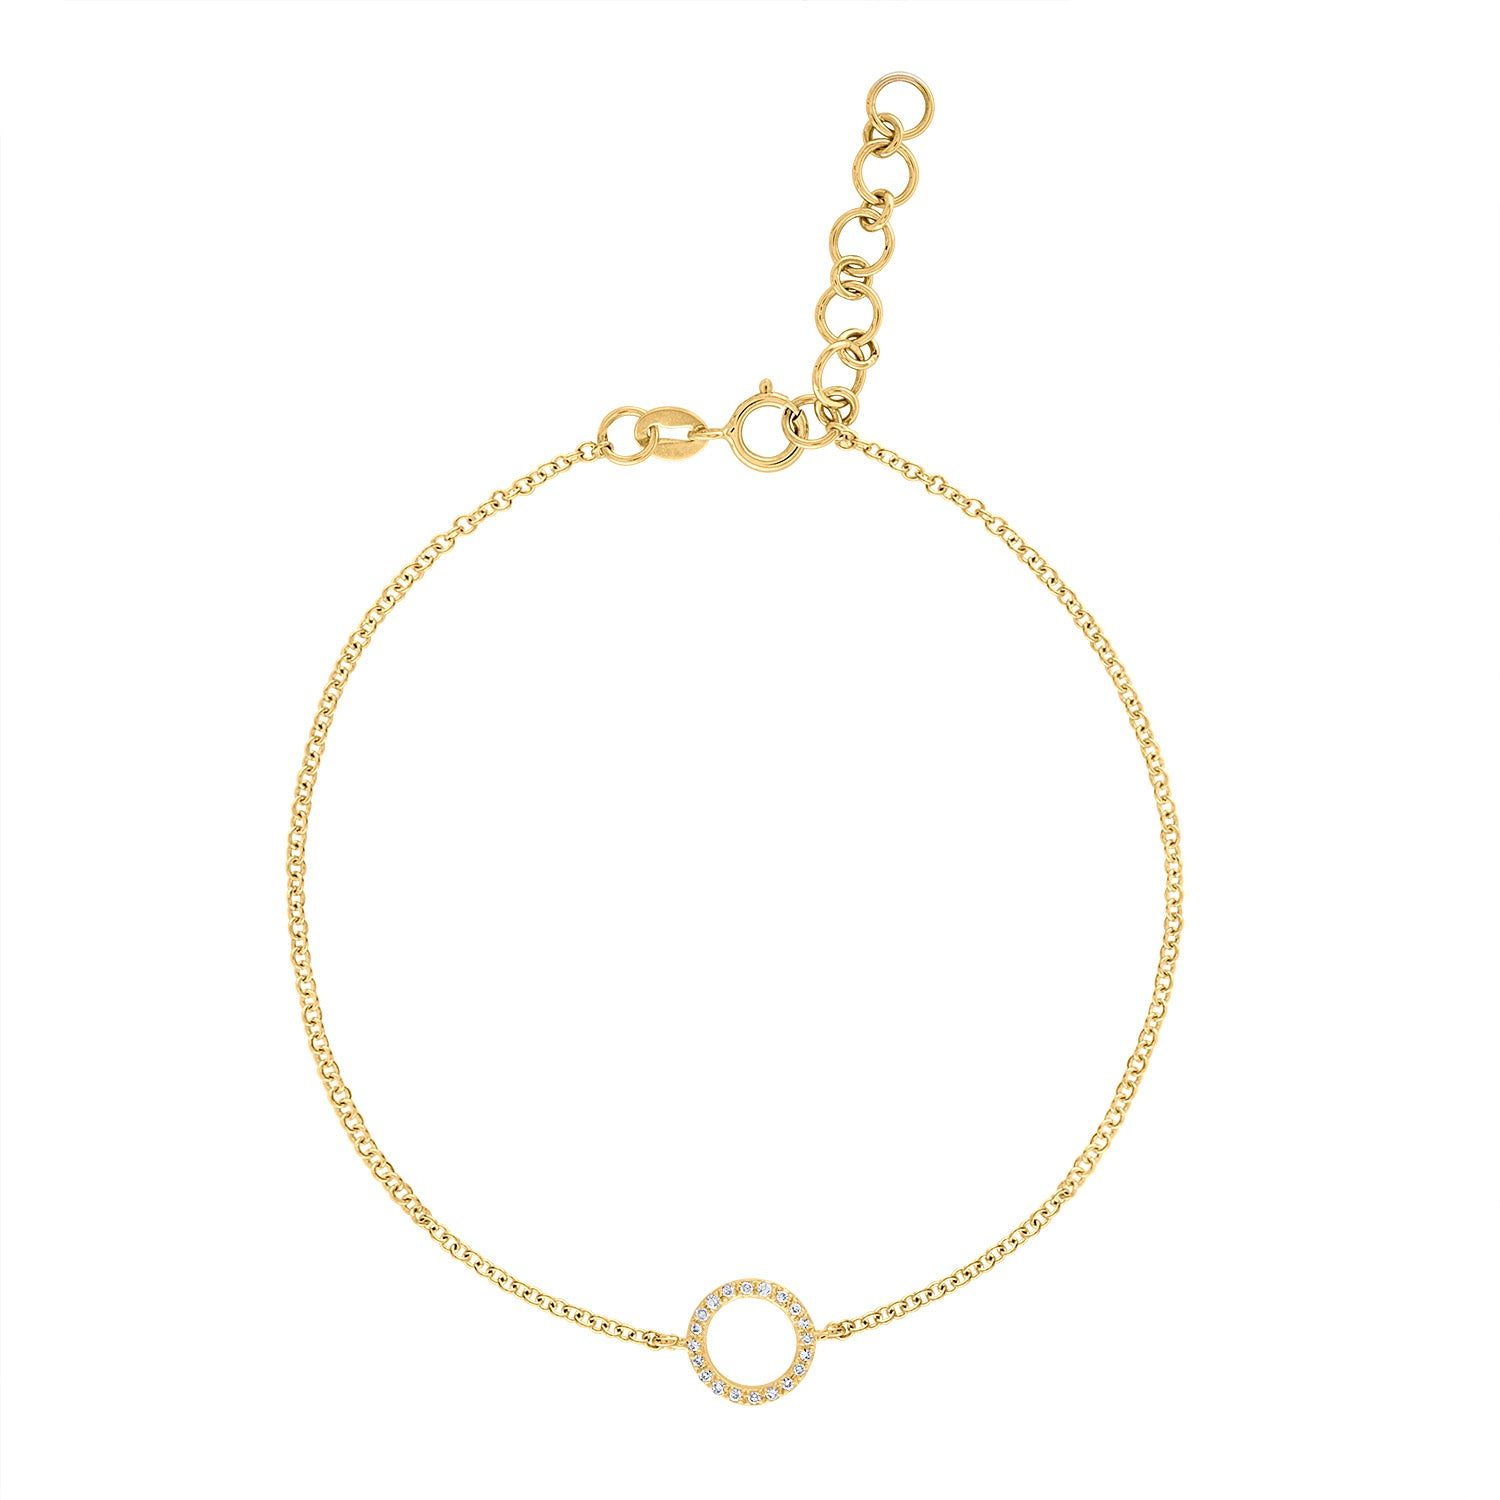 14k Yellow Gold diamond open circle bracelet